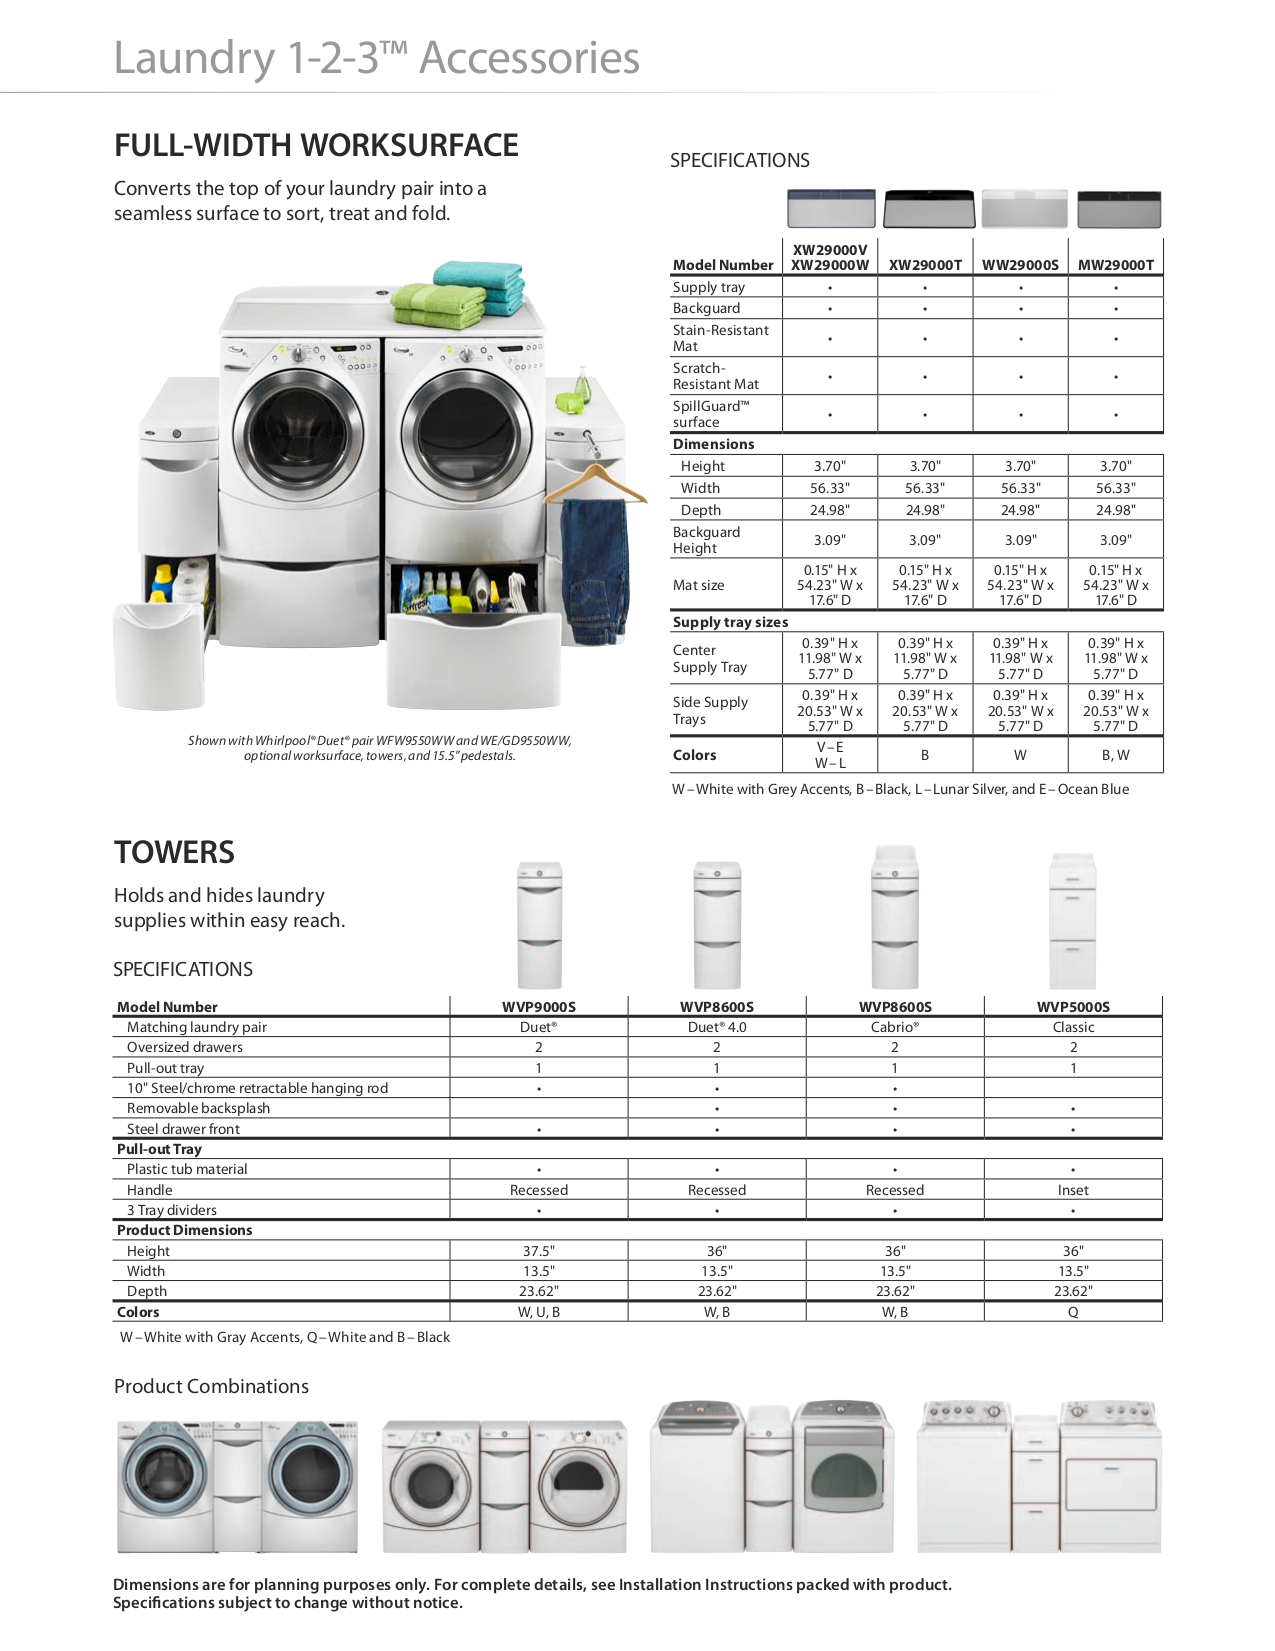 pdf manual for whirlpool dryer wed9400s